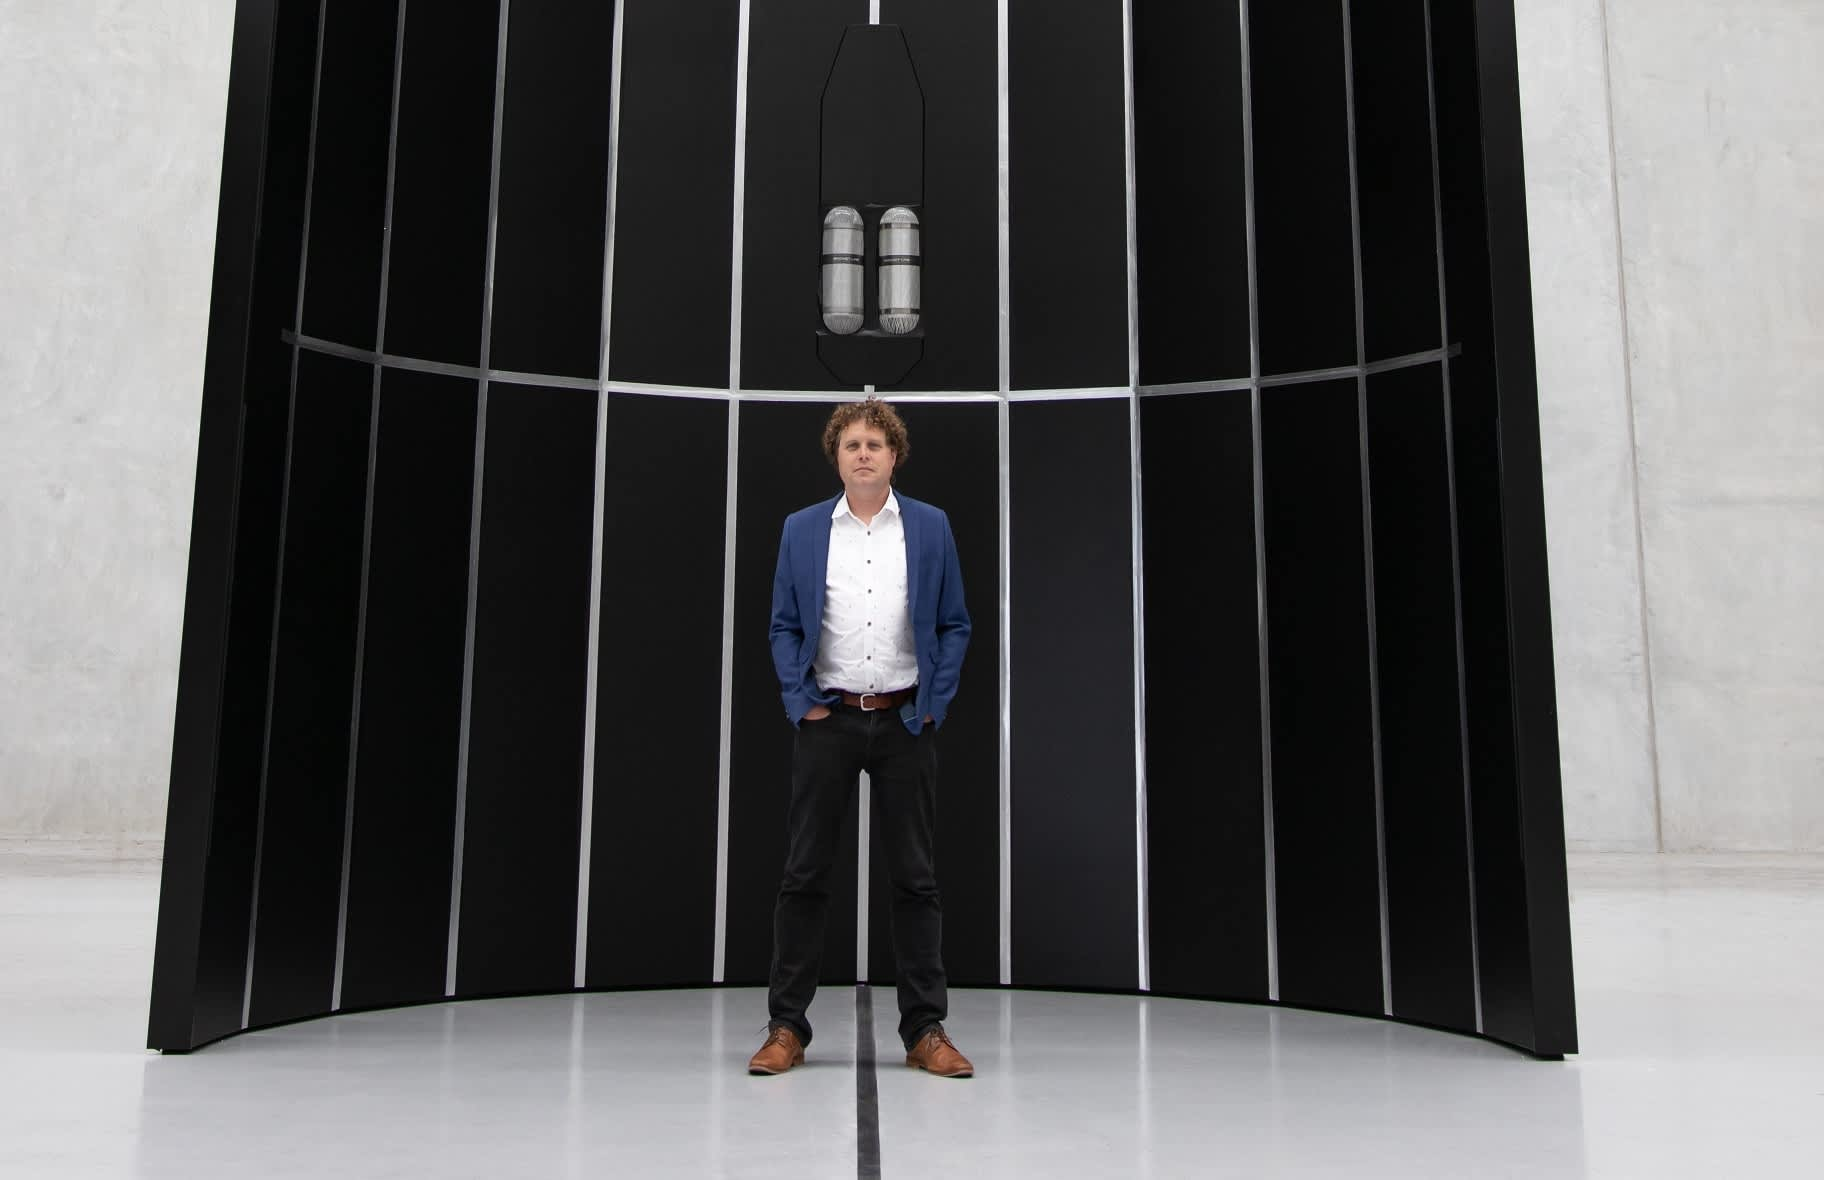 Rocket Lab CEO says SPAC deal is 'a supercharger' for development and provides capacity to launch astronauts